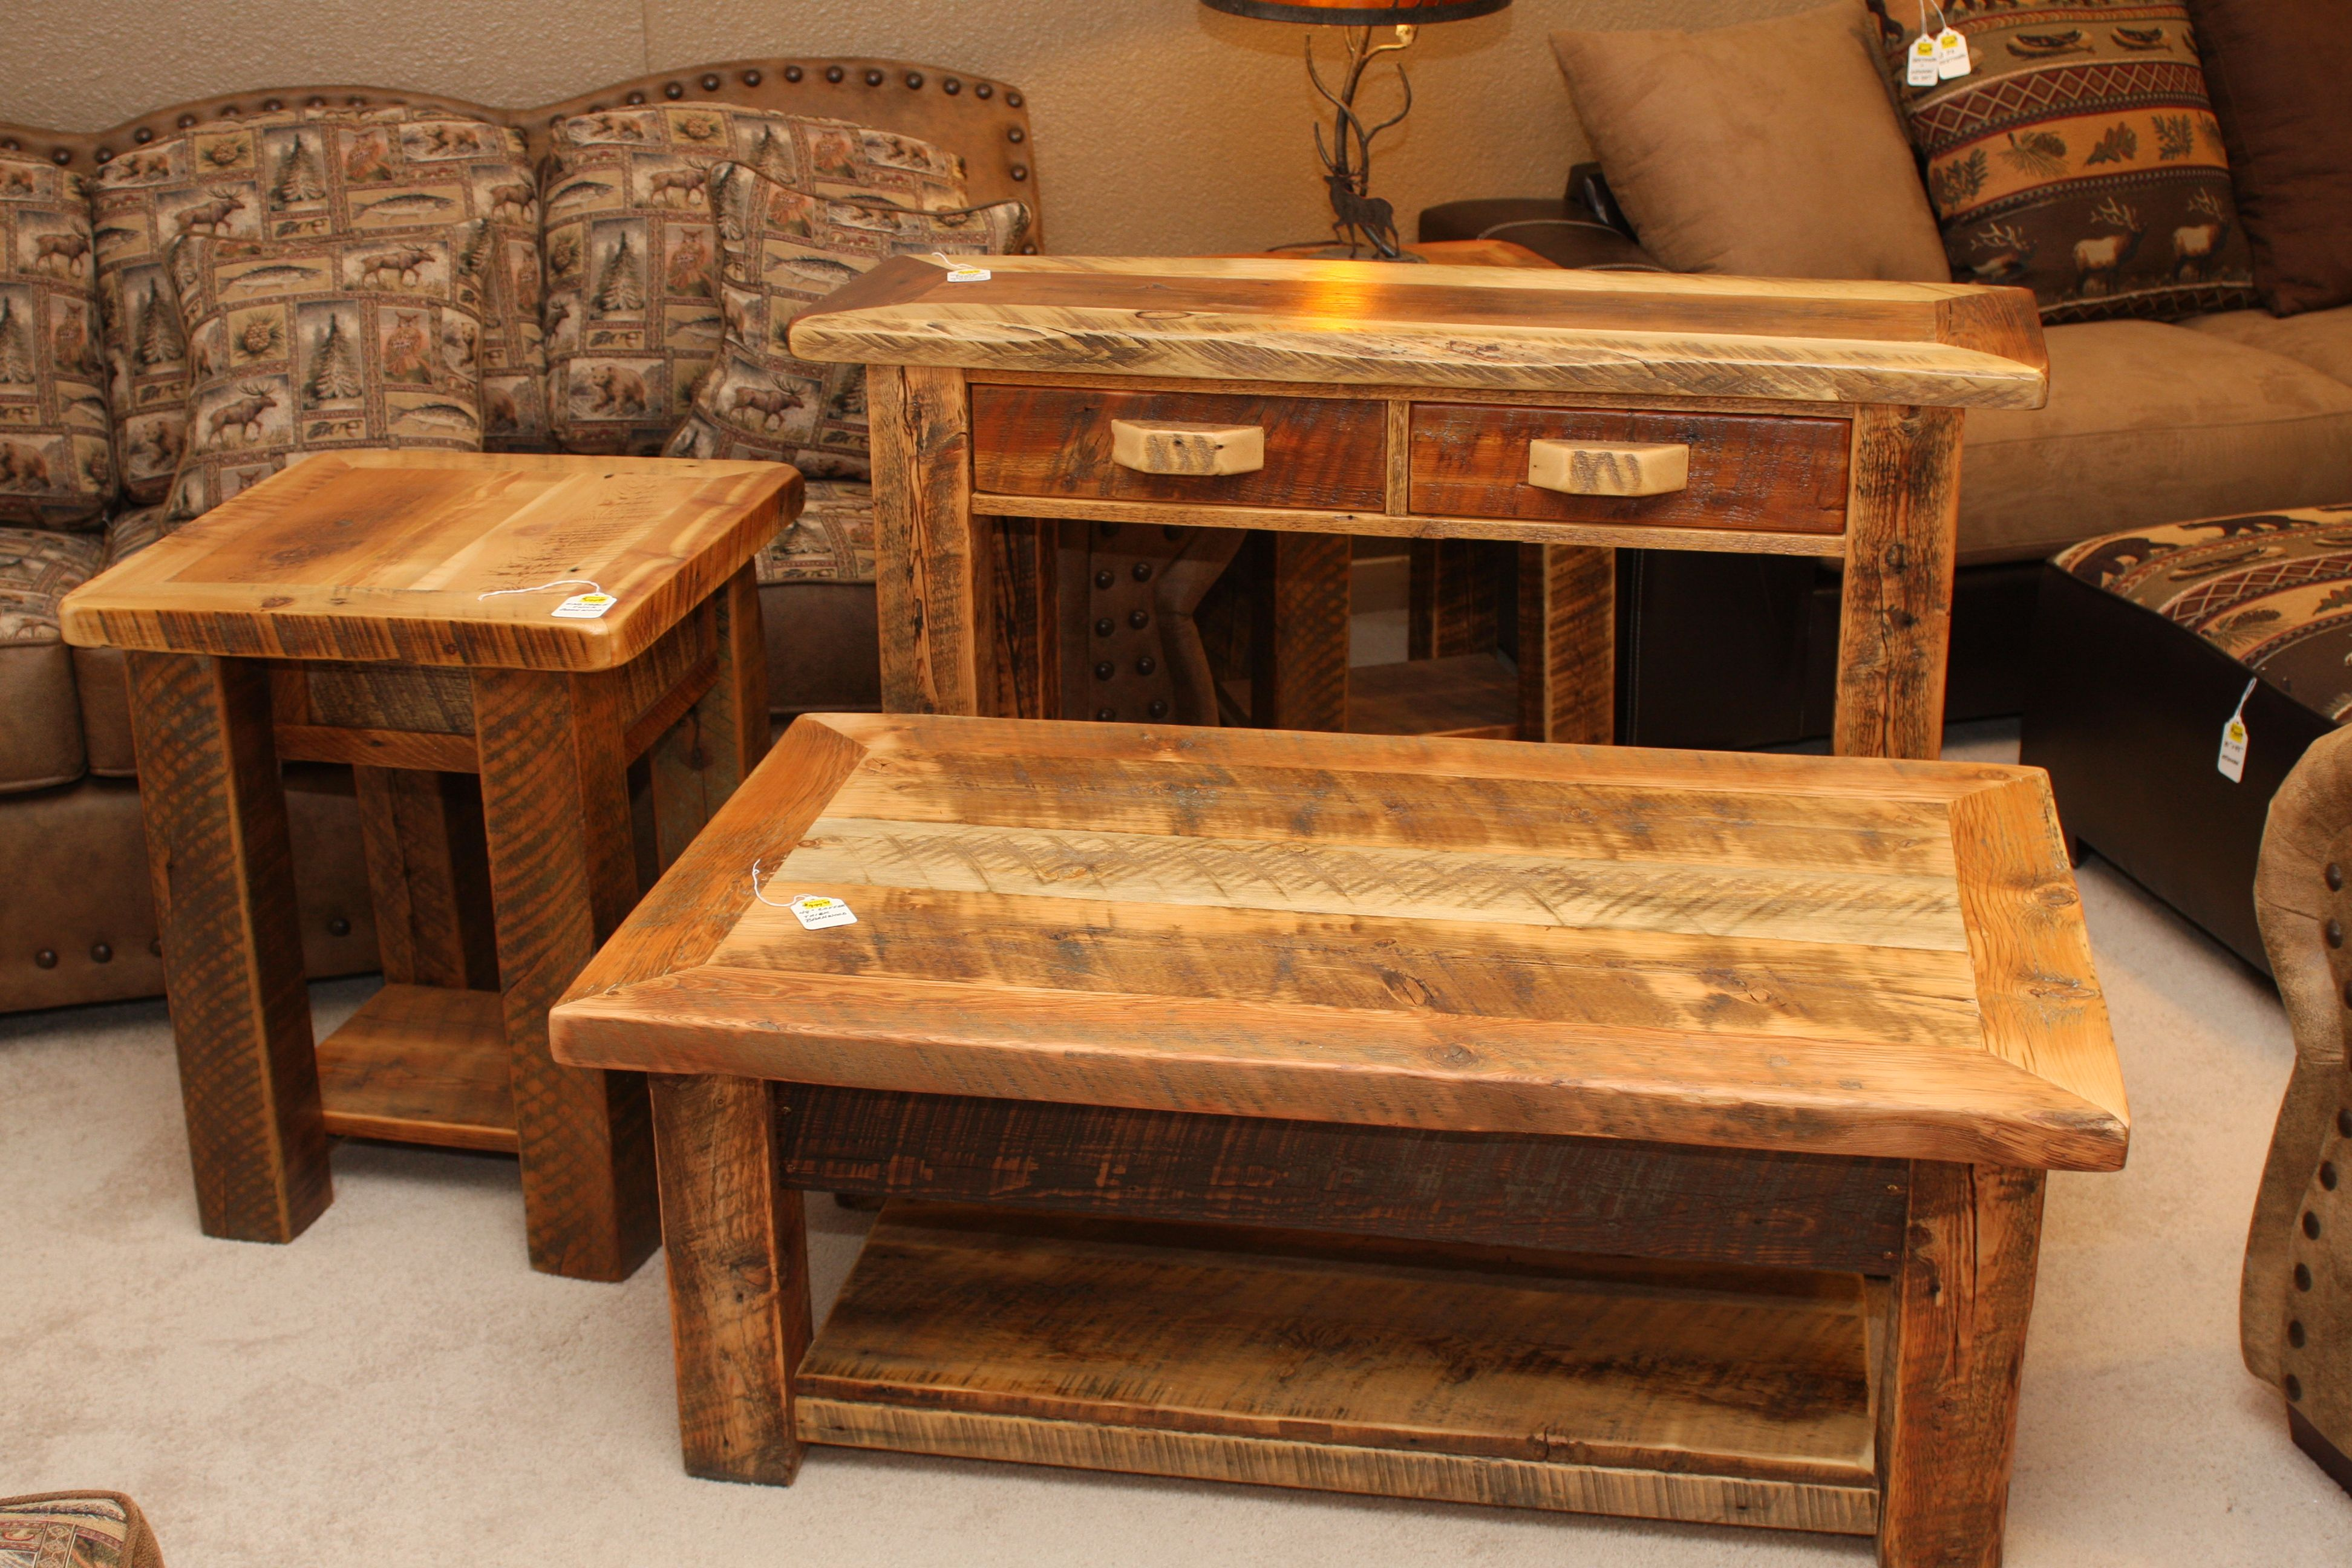 Rustic Trim Style Barnwood Living Room Set Coffee Table Sofa Table End Table Reclaimed Barnwood Furniture Living Room Table Sets Reclaimed Barn Wood [ 2592 x 3888 Pixel ]